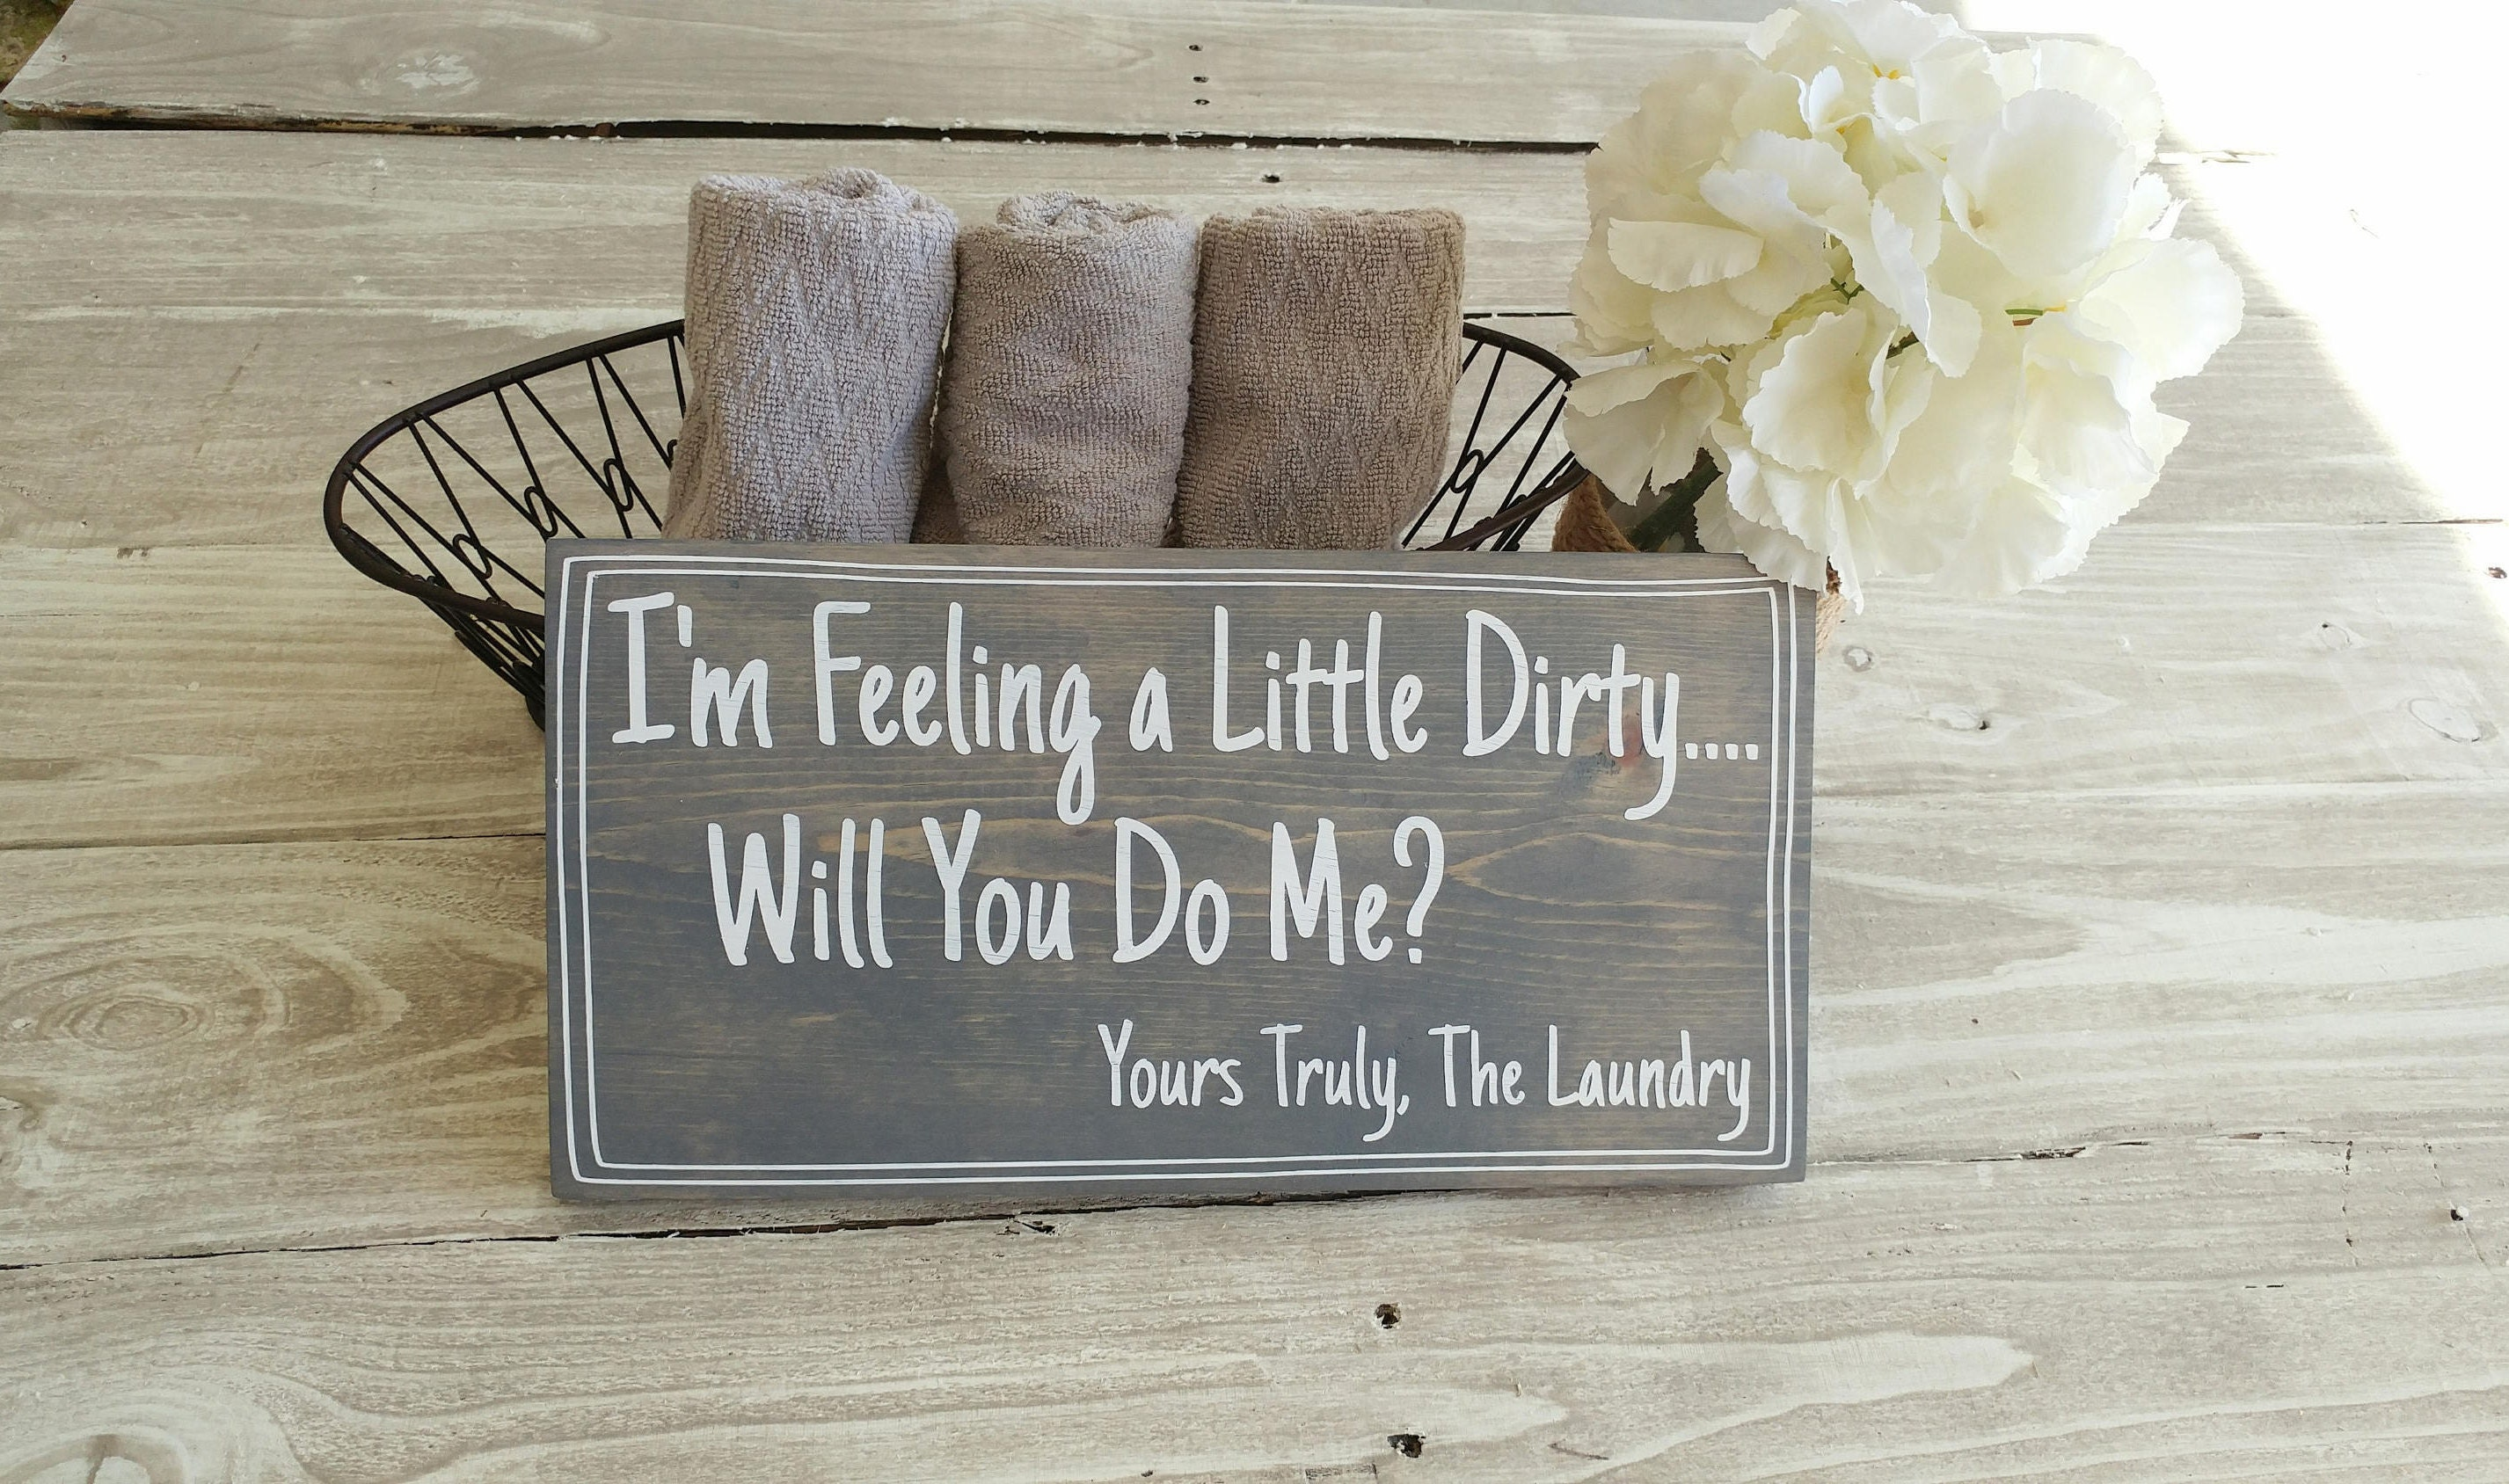 Wooden Laundry Signs For Home Laundry Room Sign Laundry Room Decor Wood Laundry Sign Home